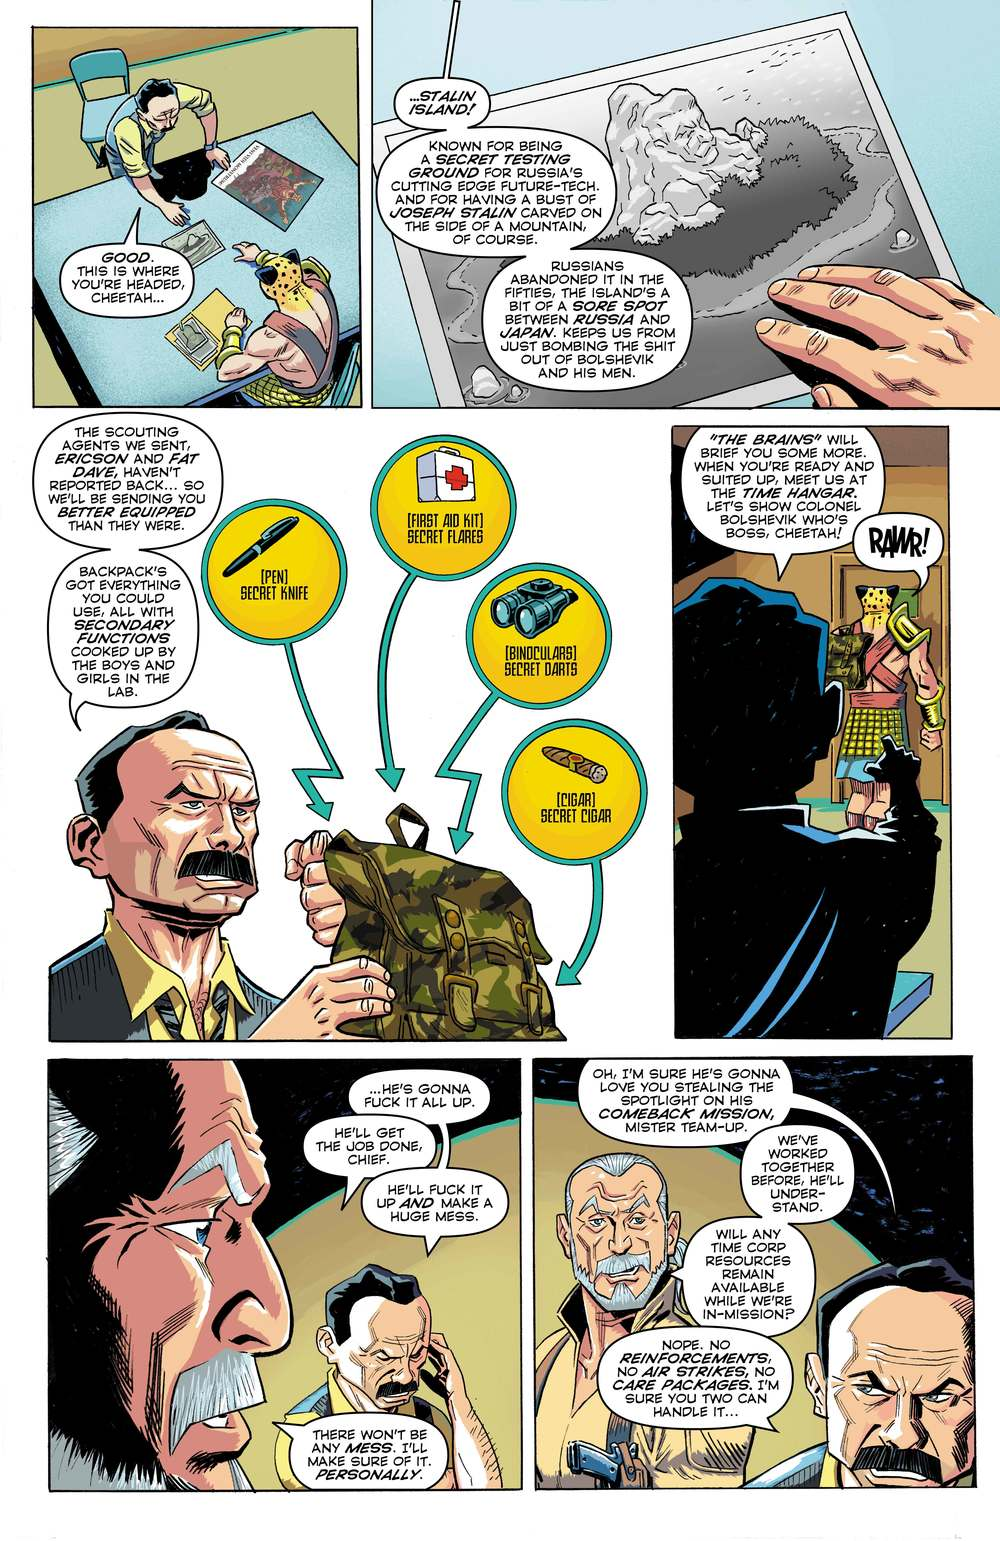 Time Cheetah - The Secret of Stalin Island Part 1 - Page 08